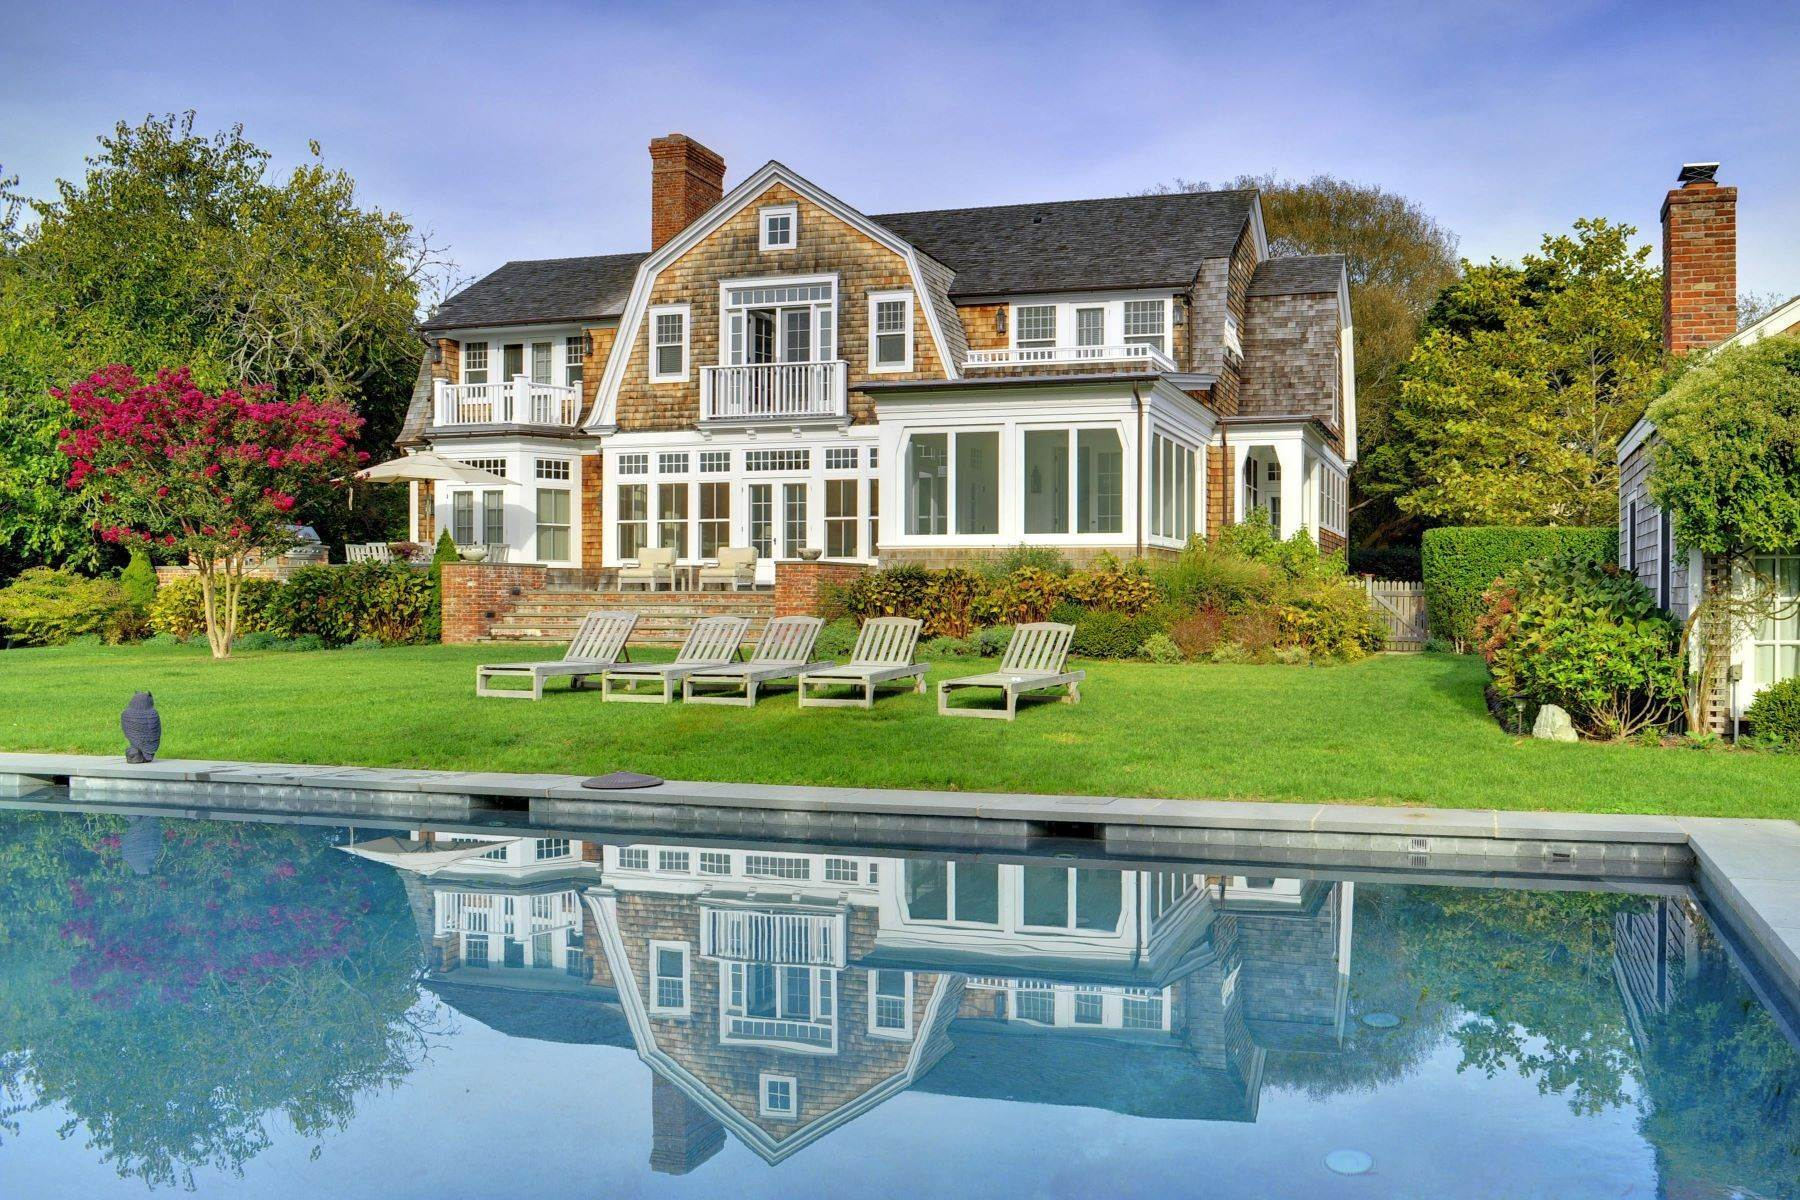 Single Family Homes en Egypt Lane Summer Cottage 123 Egypt Lane East Hampton, Nueva York 11937 Estados Unidos